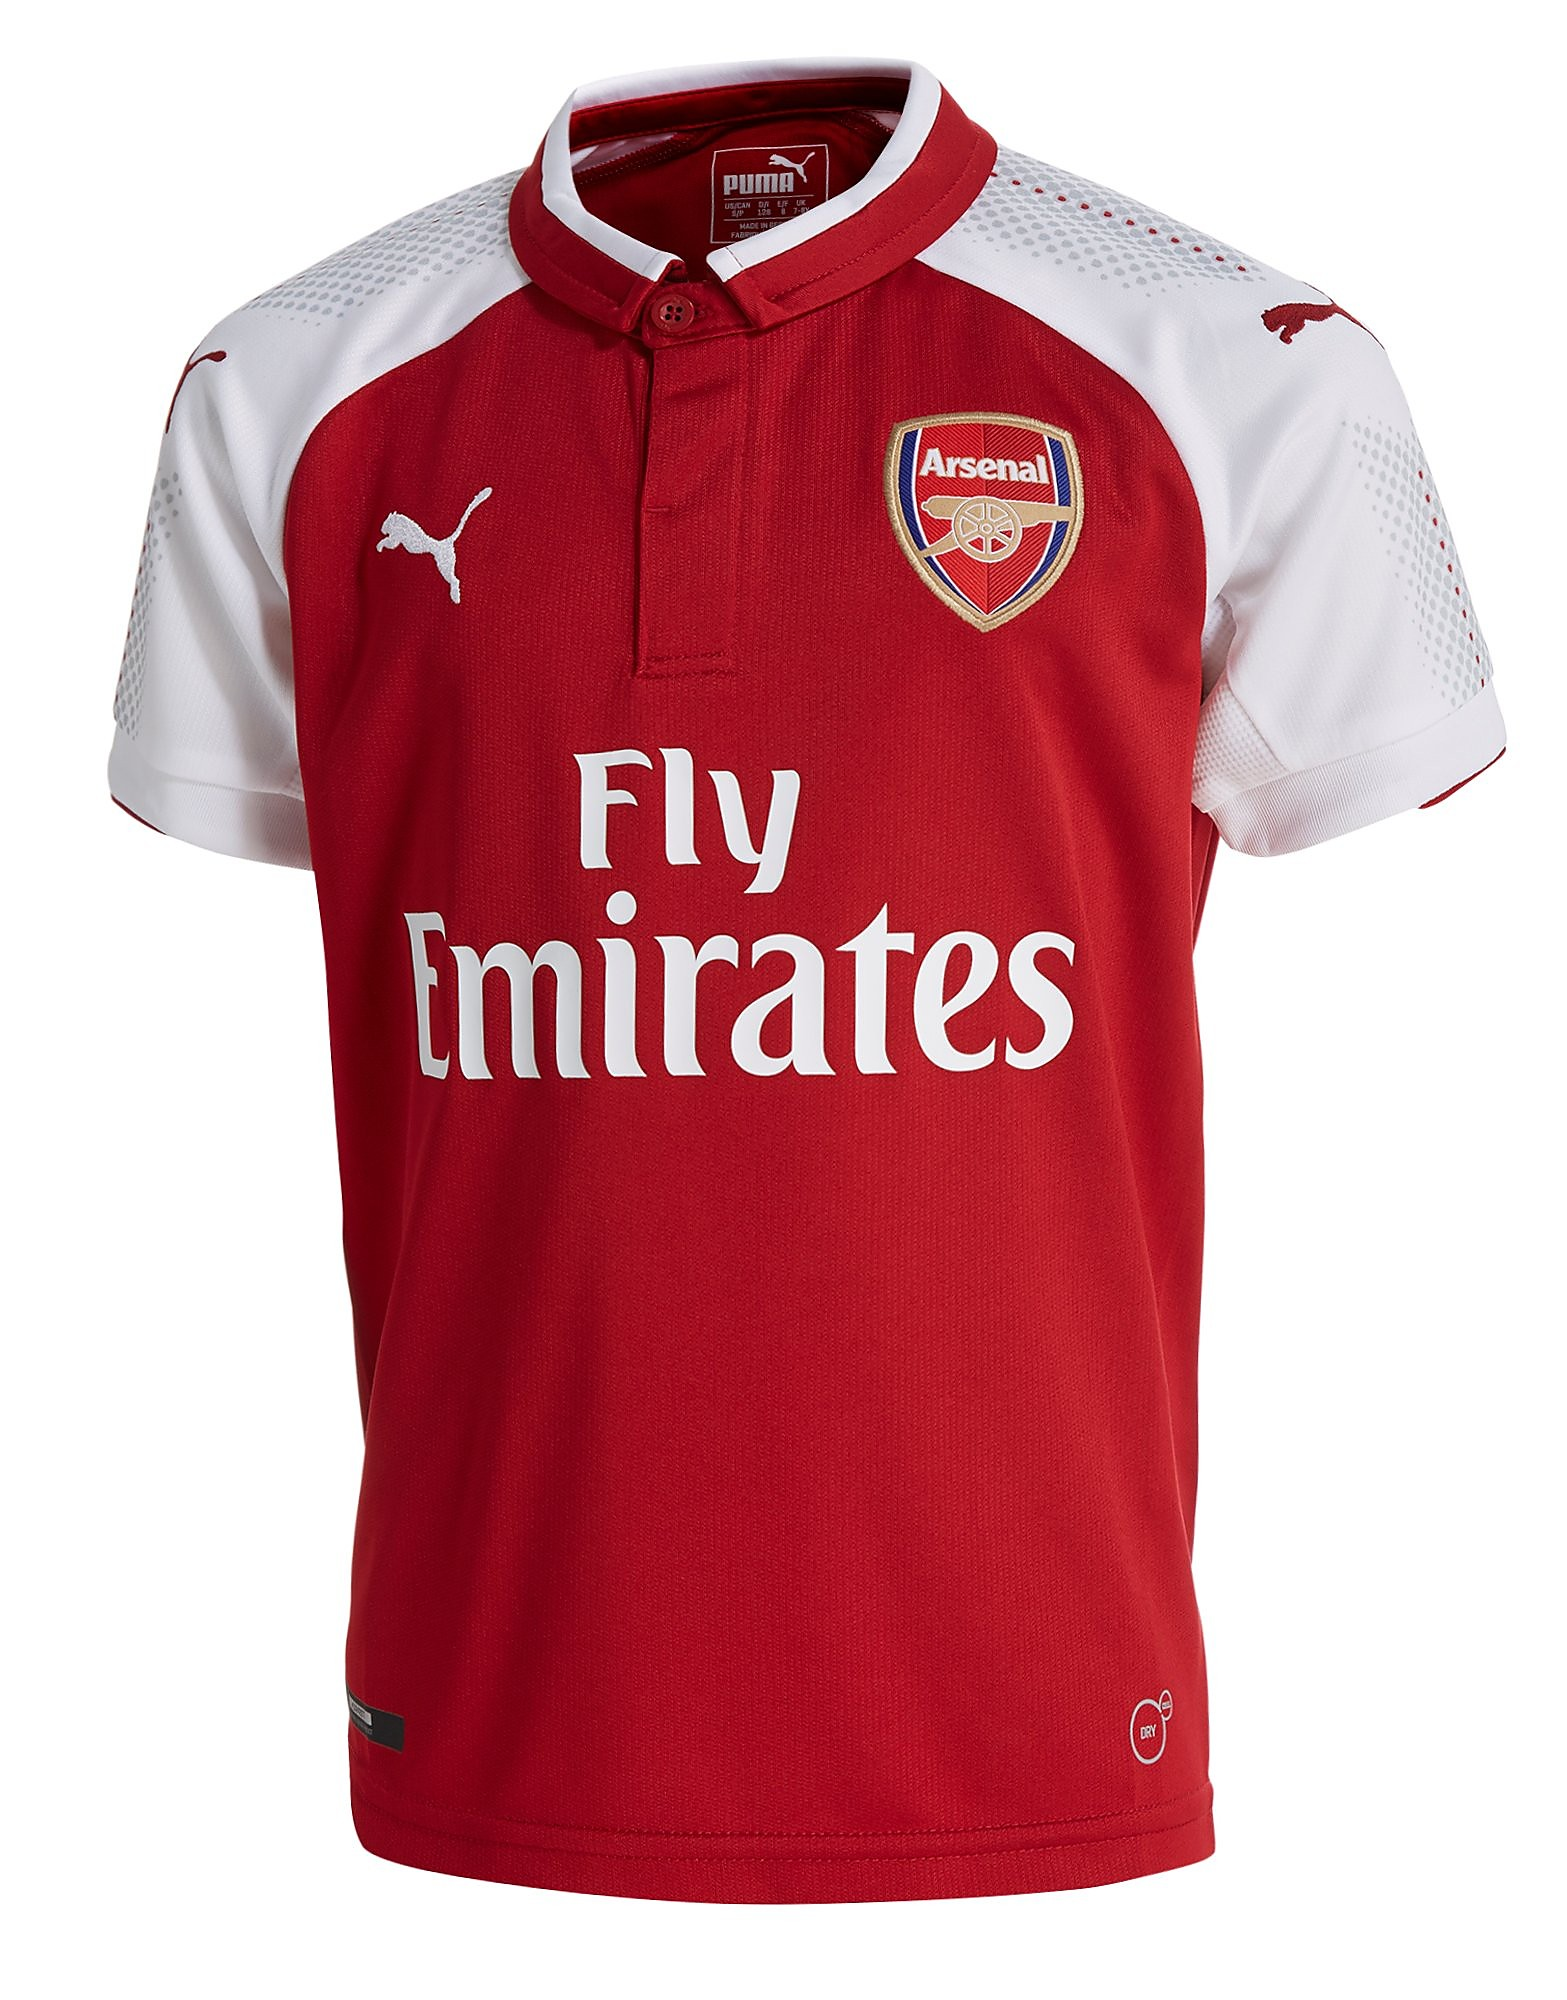 PUMA Arsenal FC 2017/18 Home Shirt